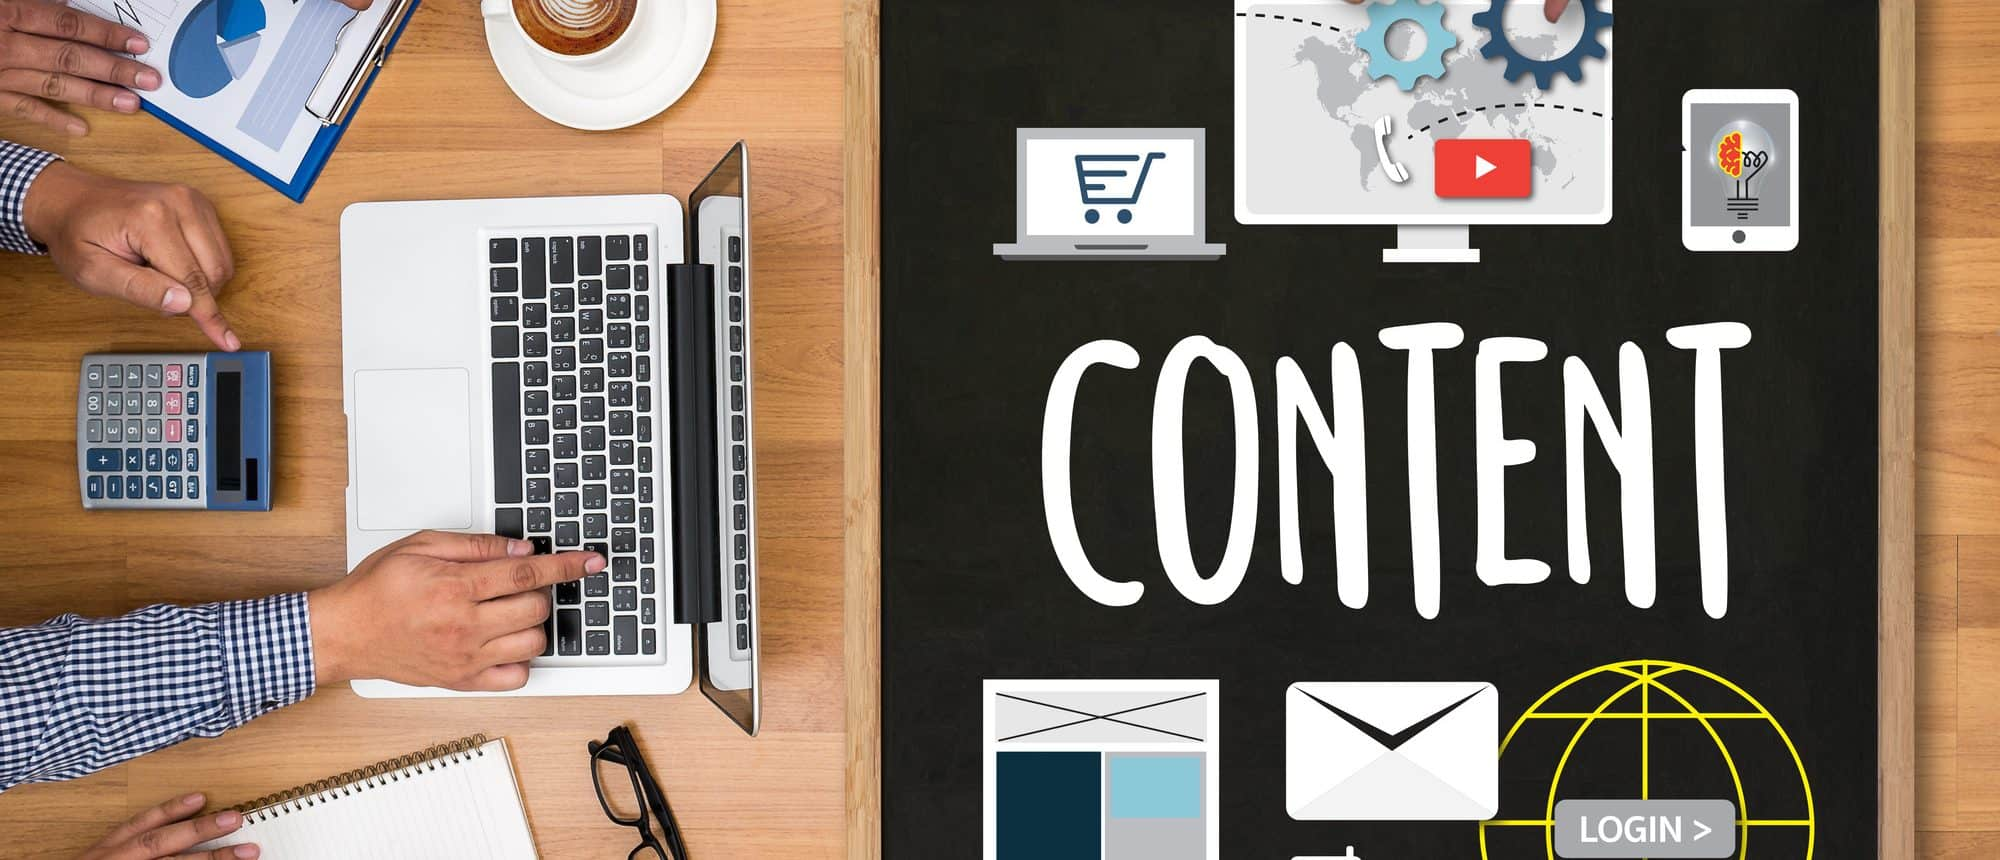 Aaron Vick - How to Develop the Best Content Marketing Plan